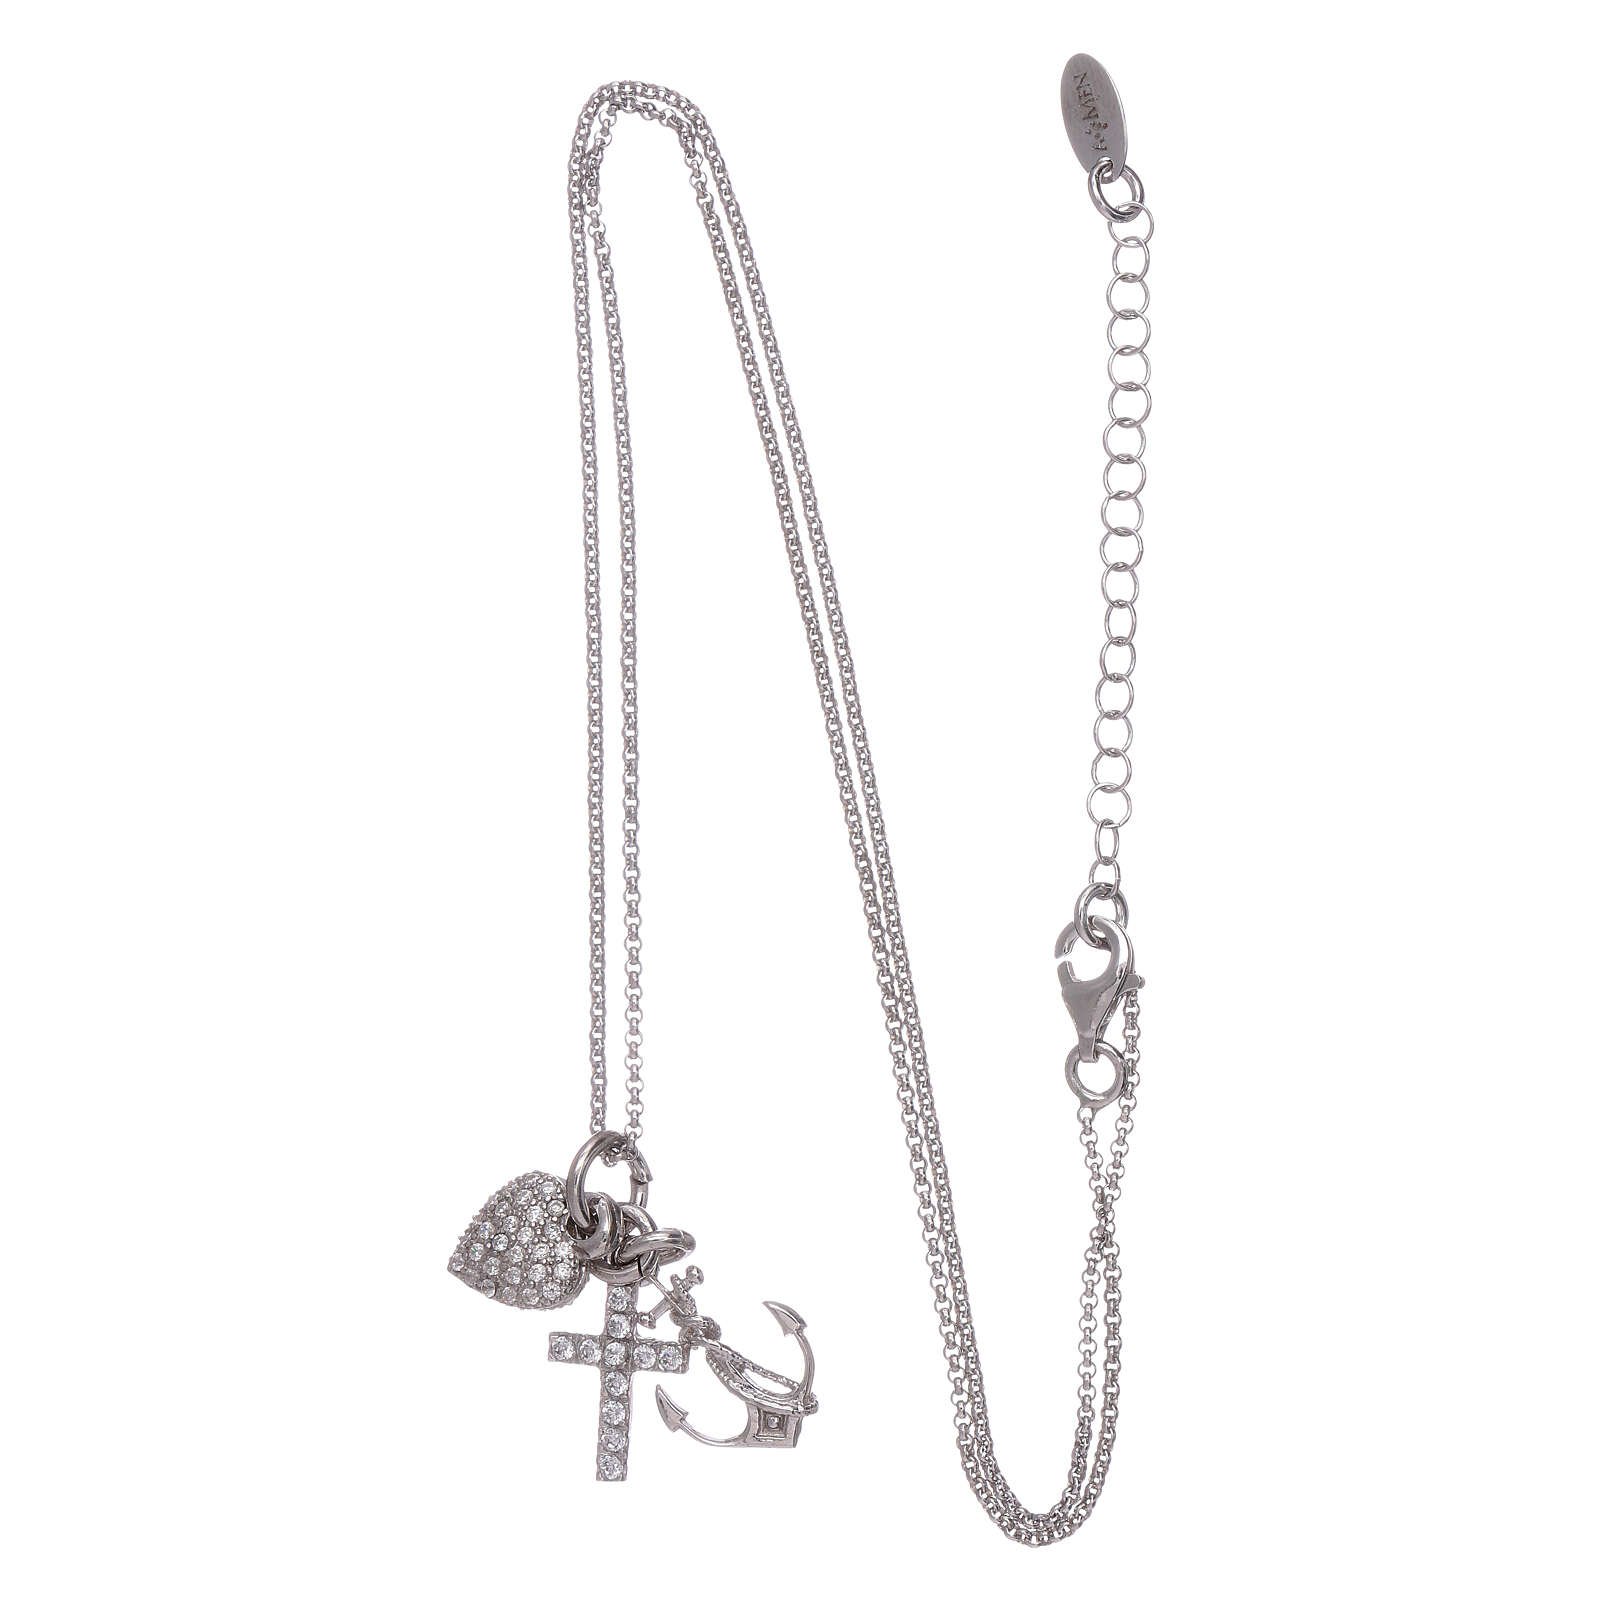 AMEN necklace in 925 sterling silver with three charms Faith, Hope and Compassion 4